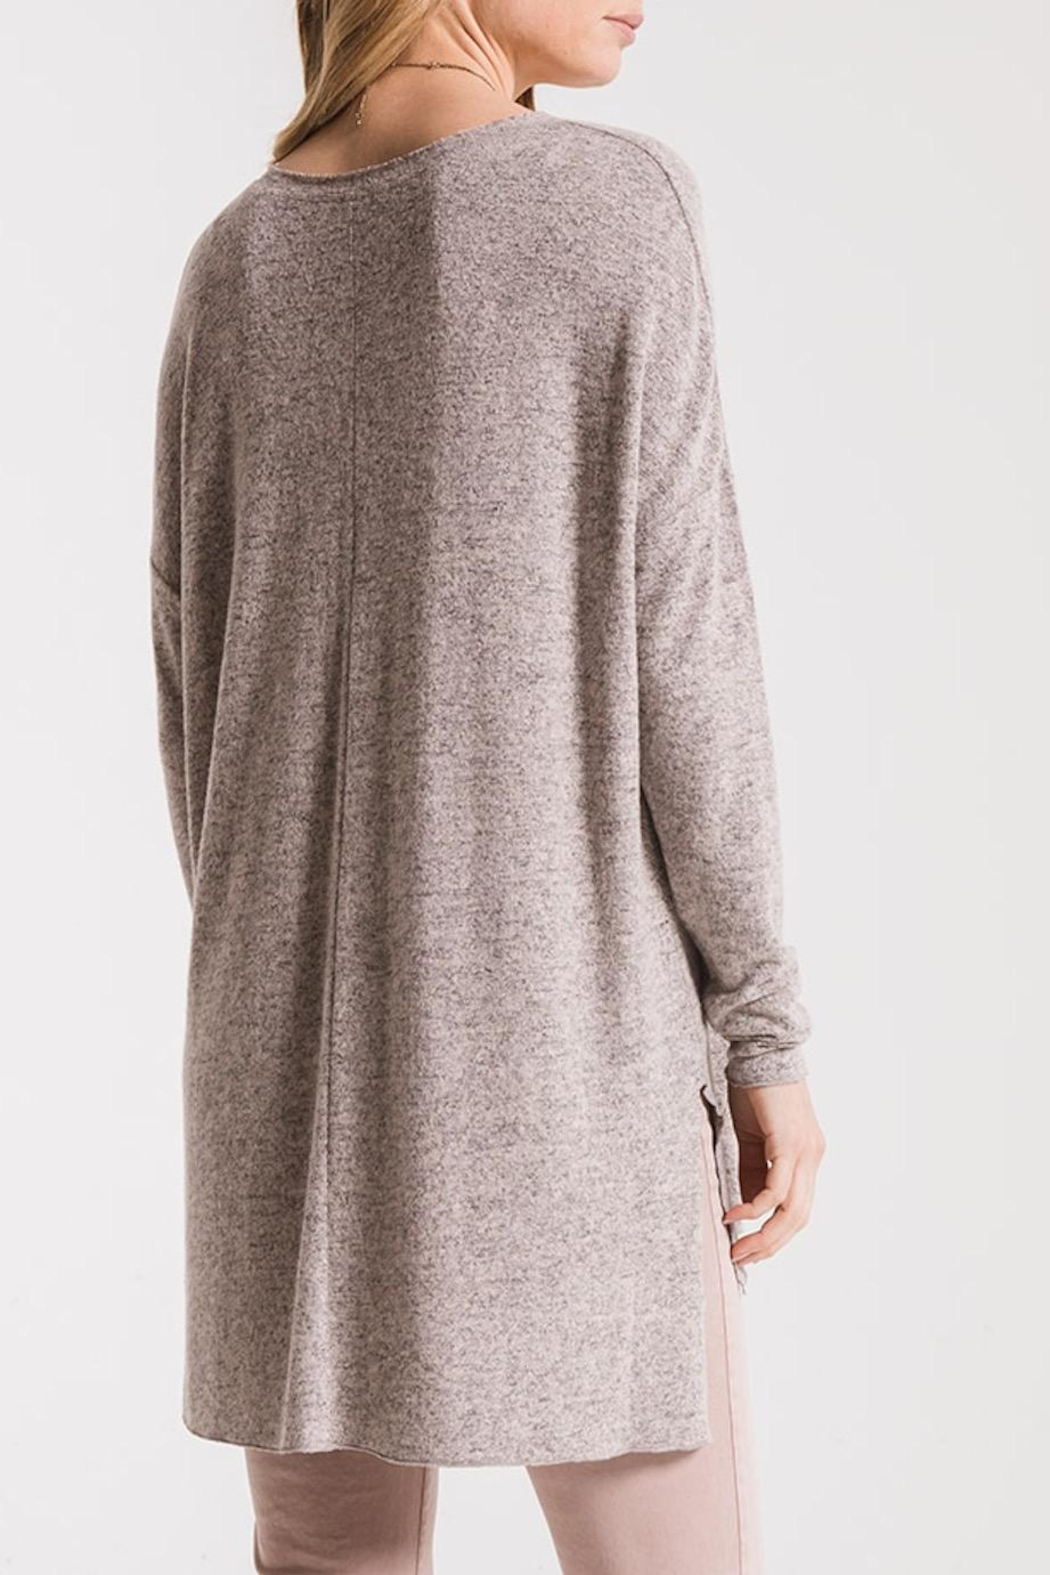 z supply Marled Sweater Tunic - Front Full Image